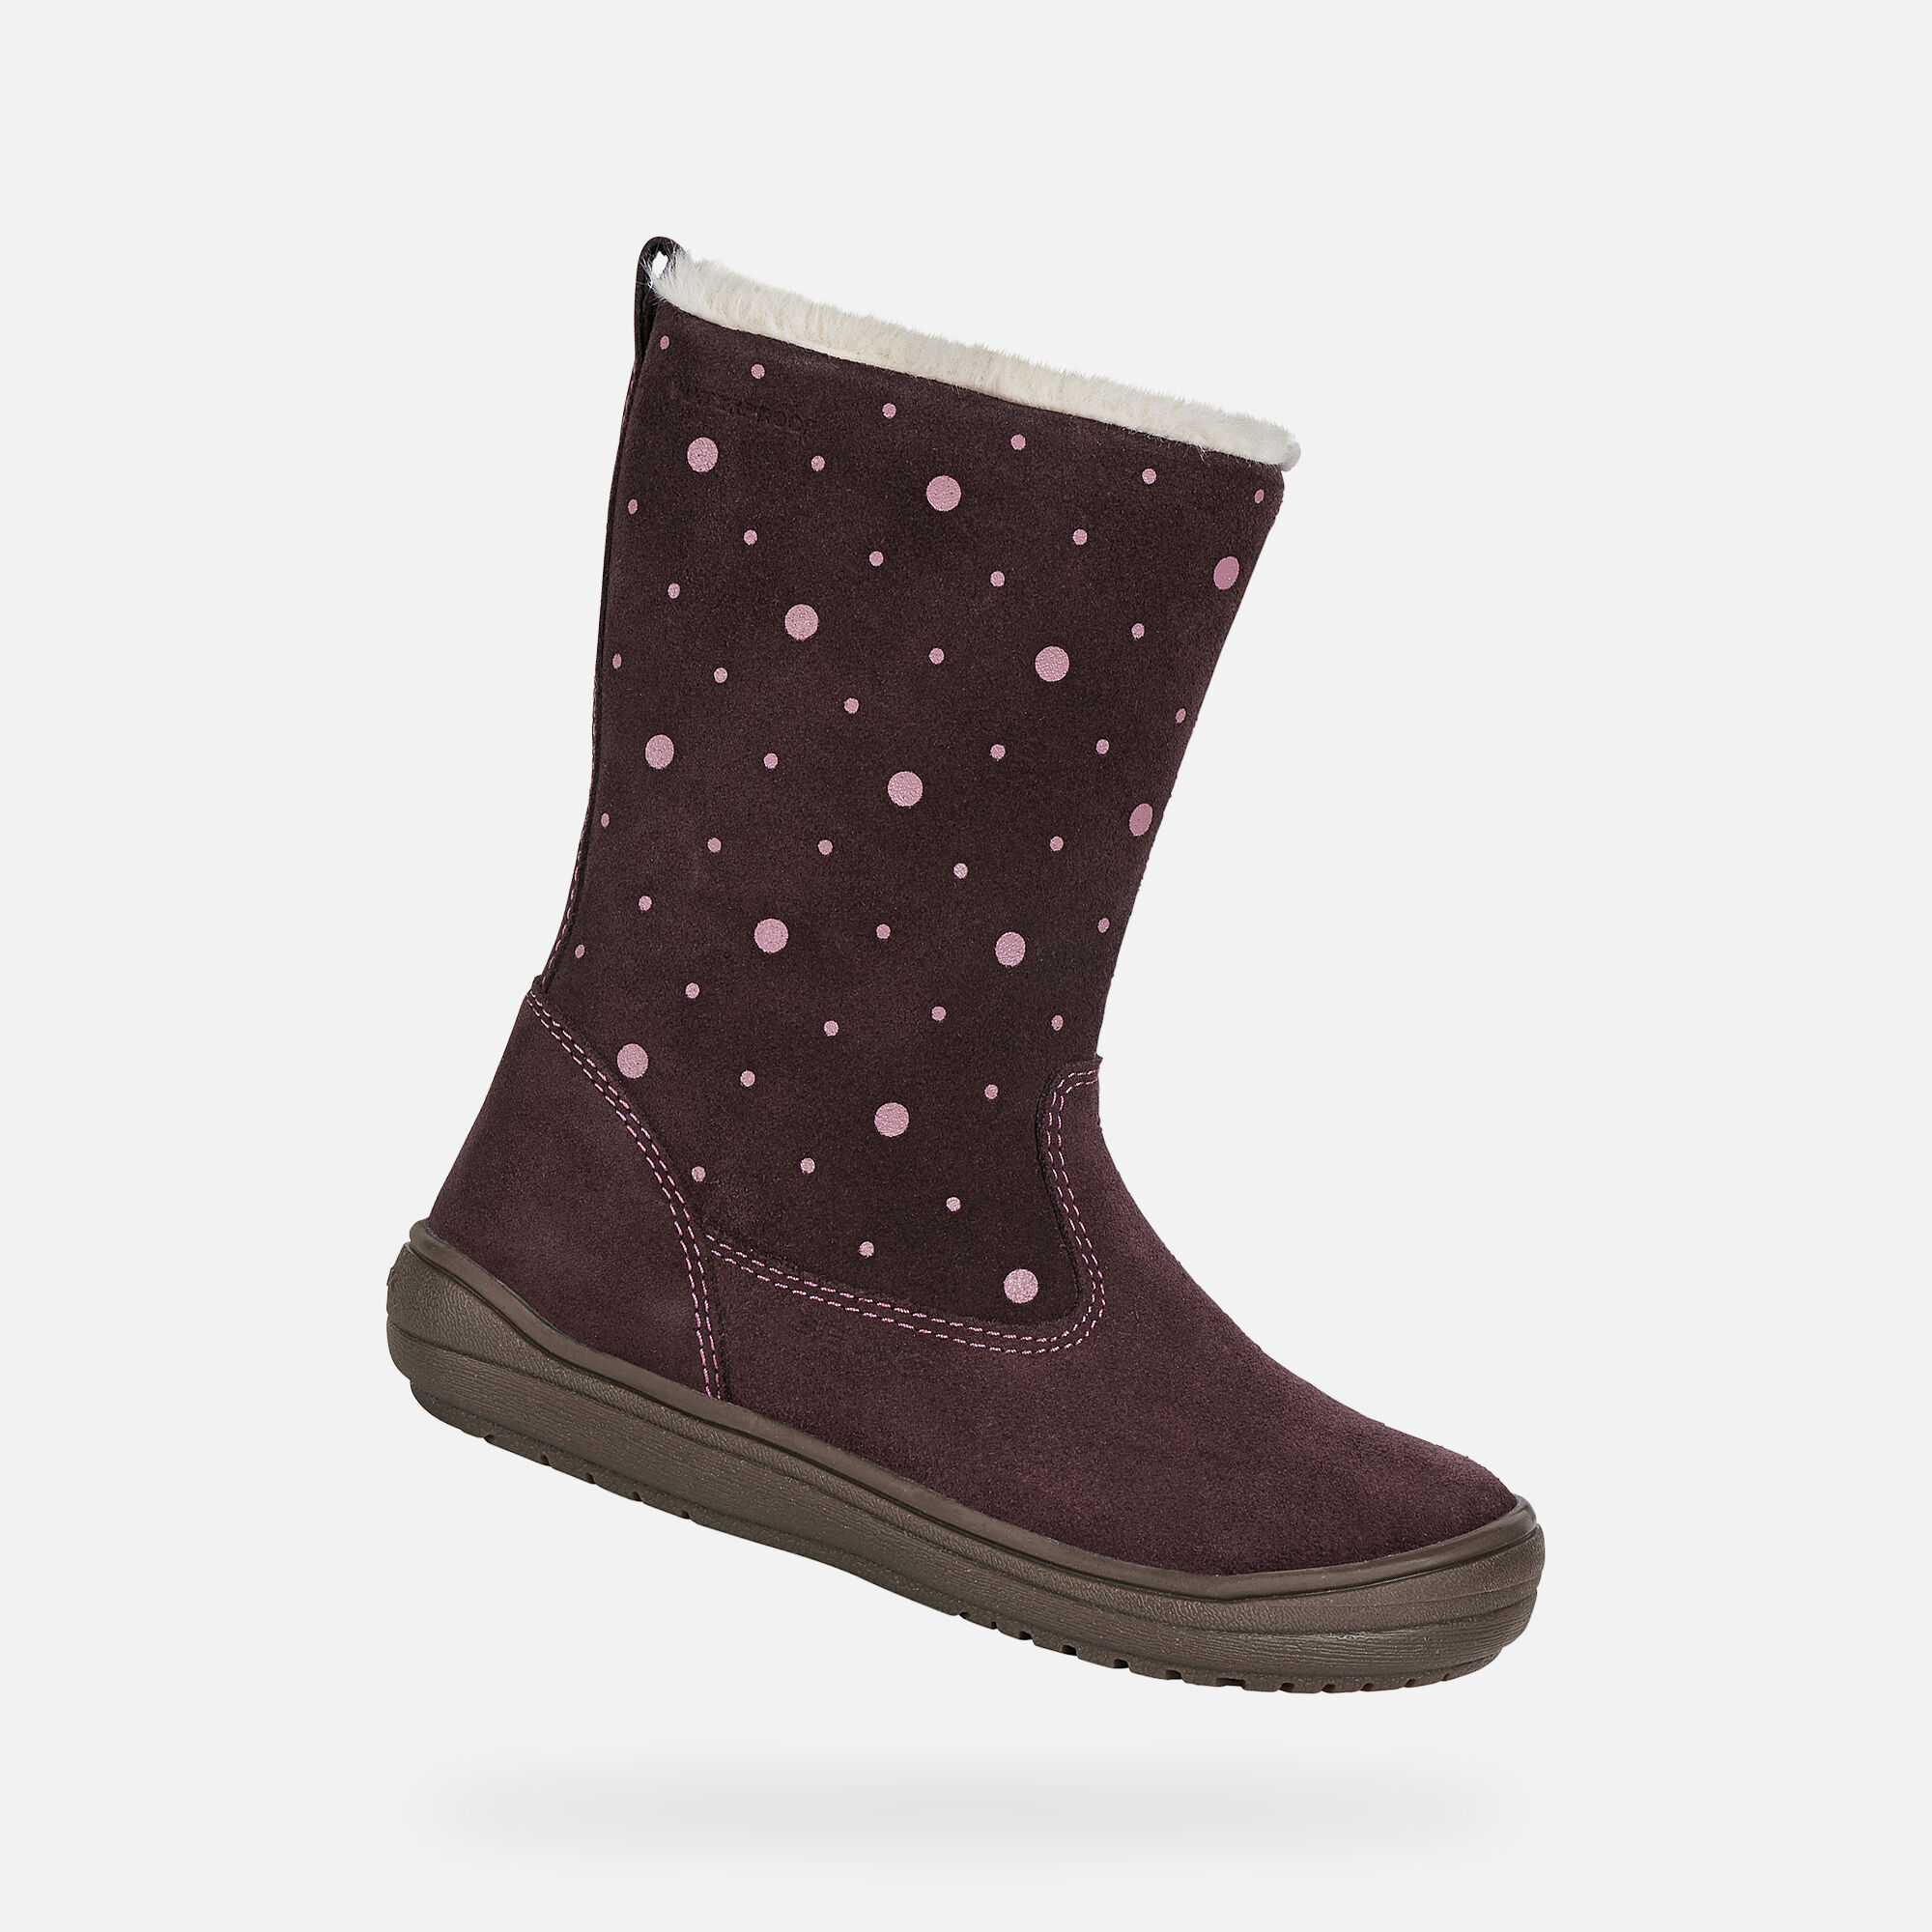 HADRIEL WPF GIRL - BOOTS from girls | Geox